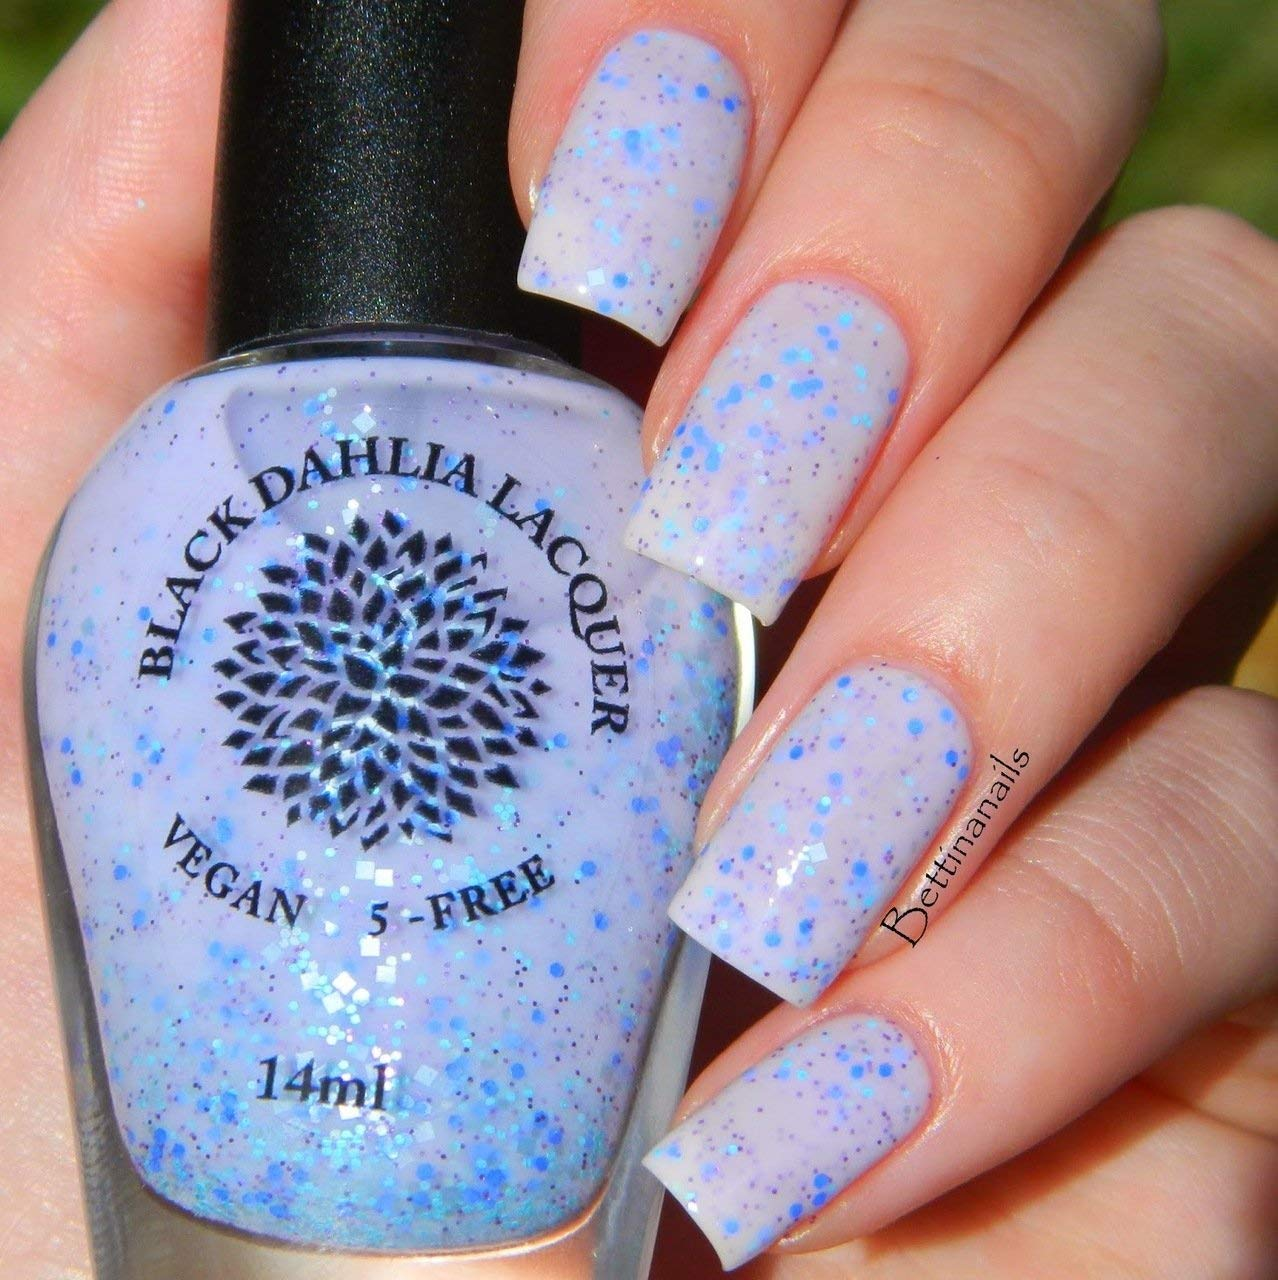 Speckled Lilac | Pale Purple Crelly Nail Polish with Lilac, Aqua and Mint Glitter | by Black Dahlia Lacquer